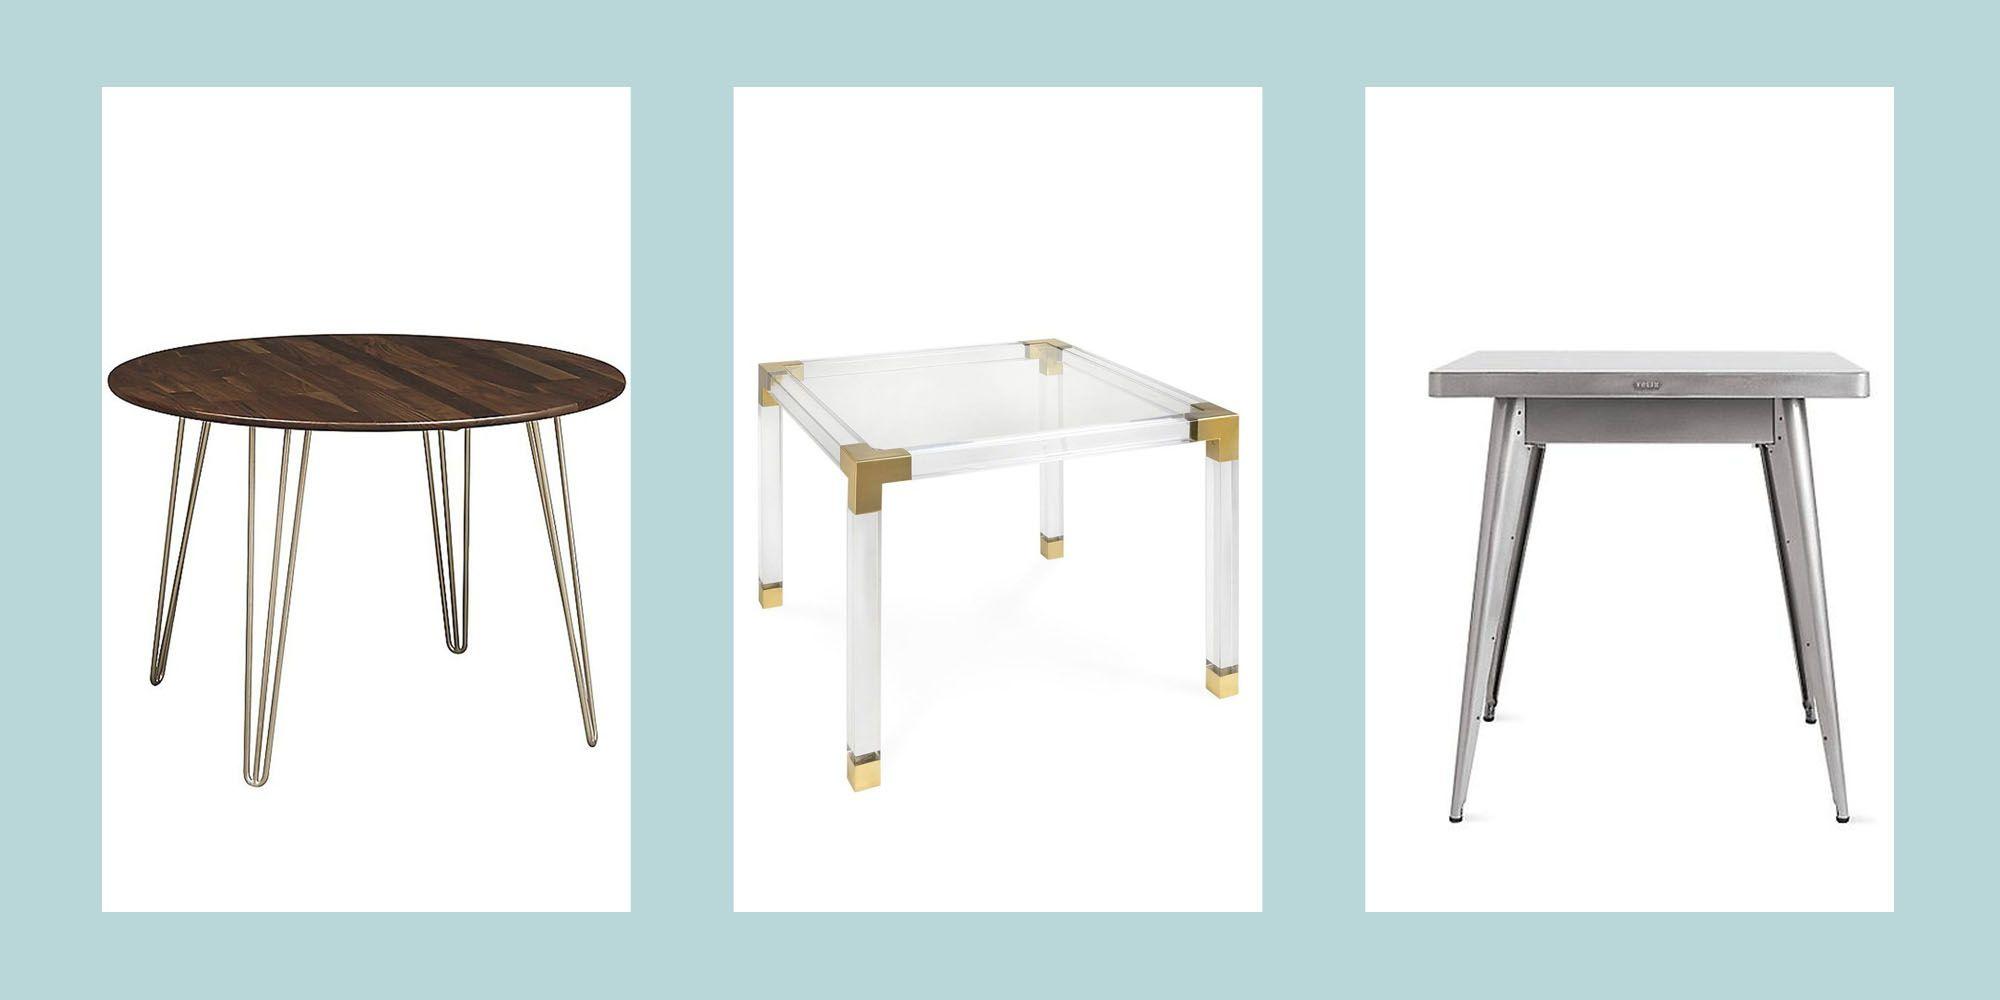 22 Small Kitchen Tables Ideal For Snug Spaces Small Dining Tables